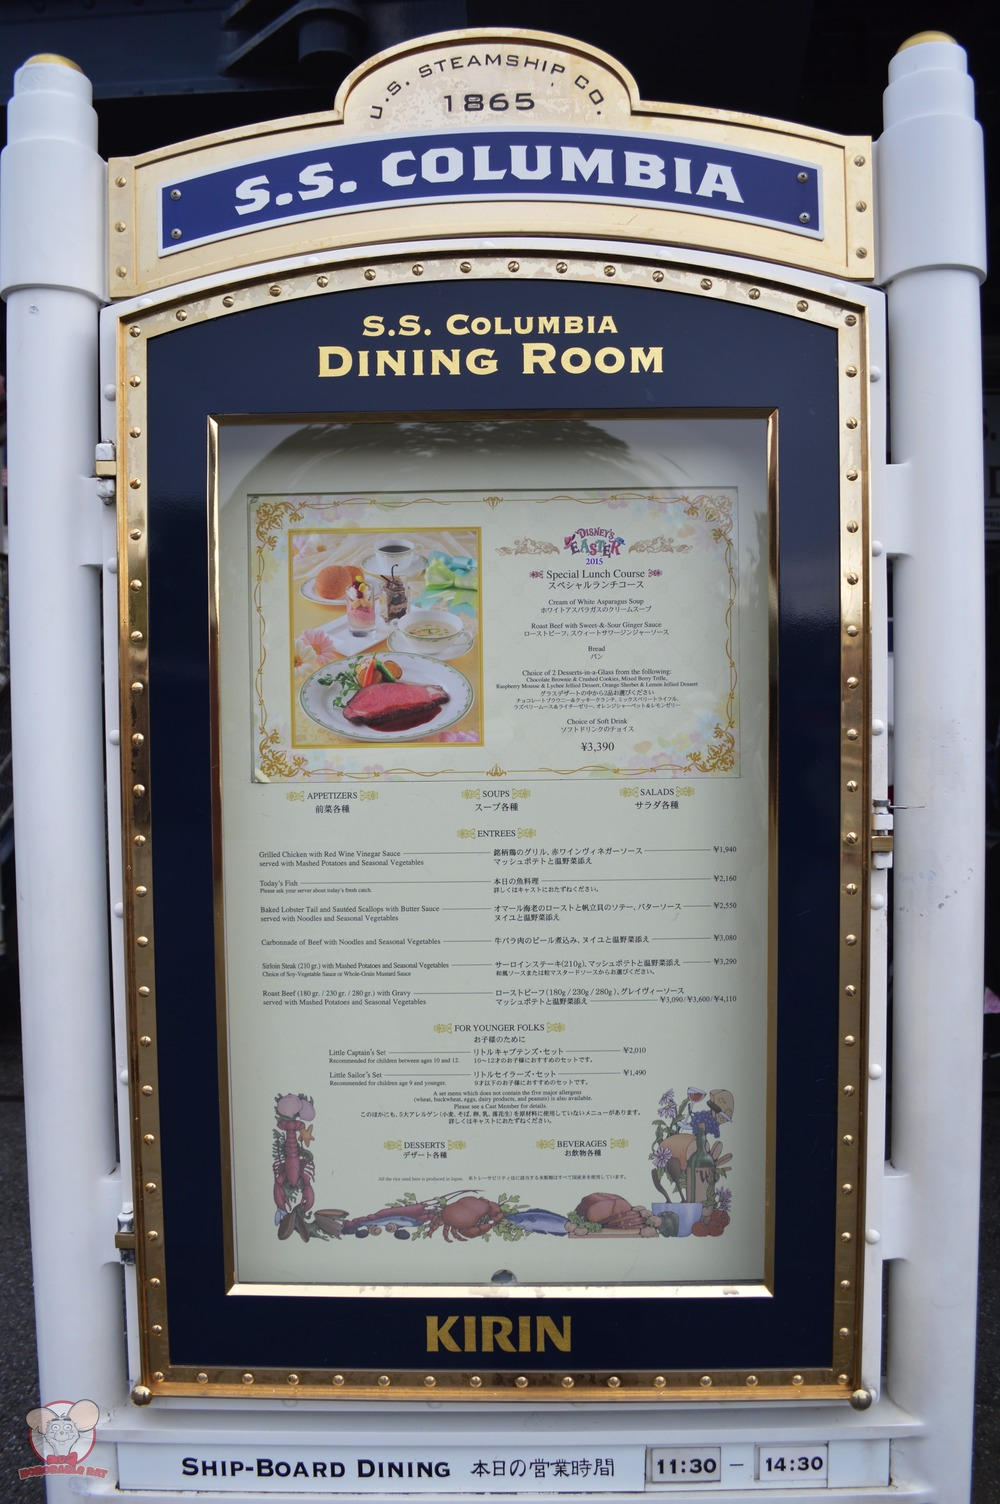 S.S. Columbia Dining Room Showcase Menu